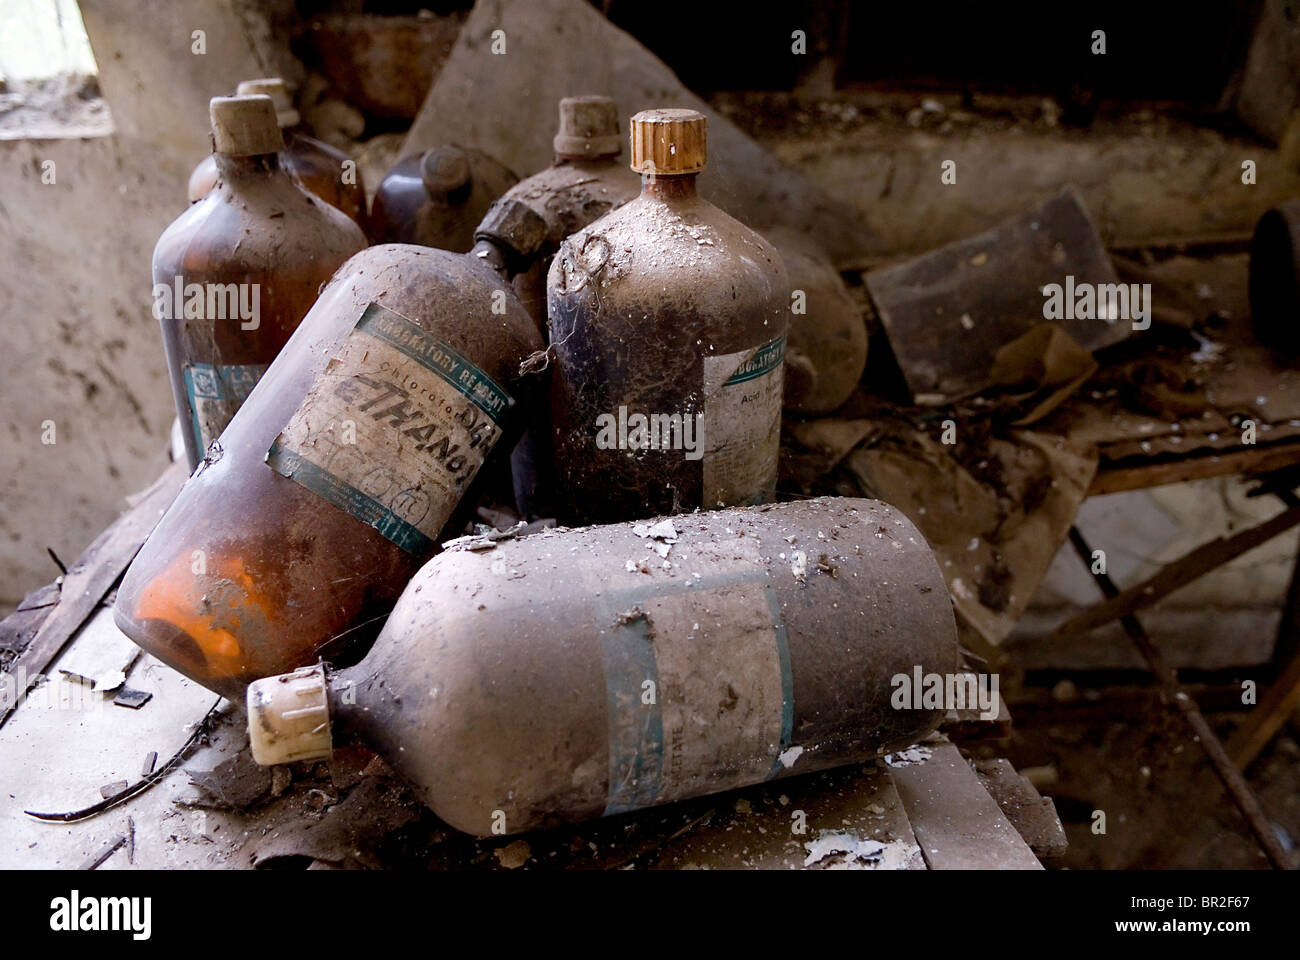 Bottles of Ethanol lie amongst the debris of the derelict Union Carbide factory. Stock Photo